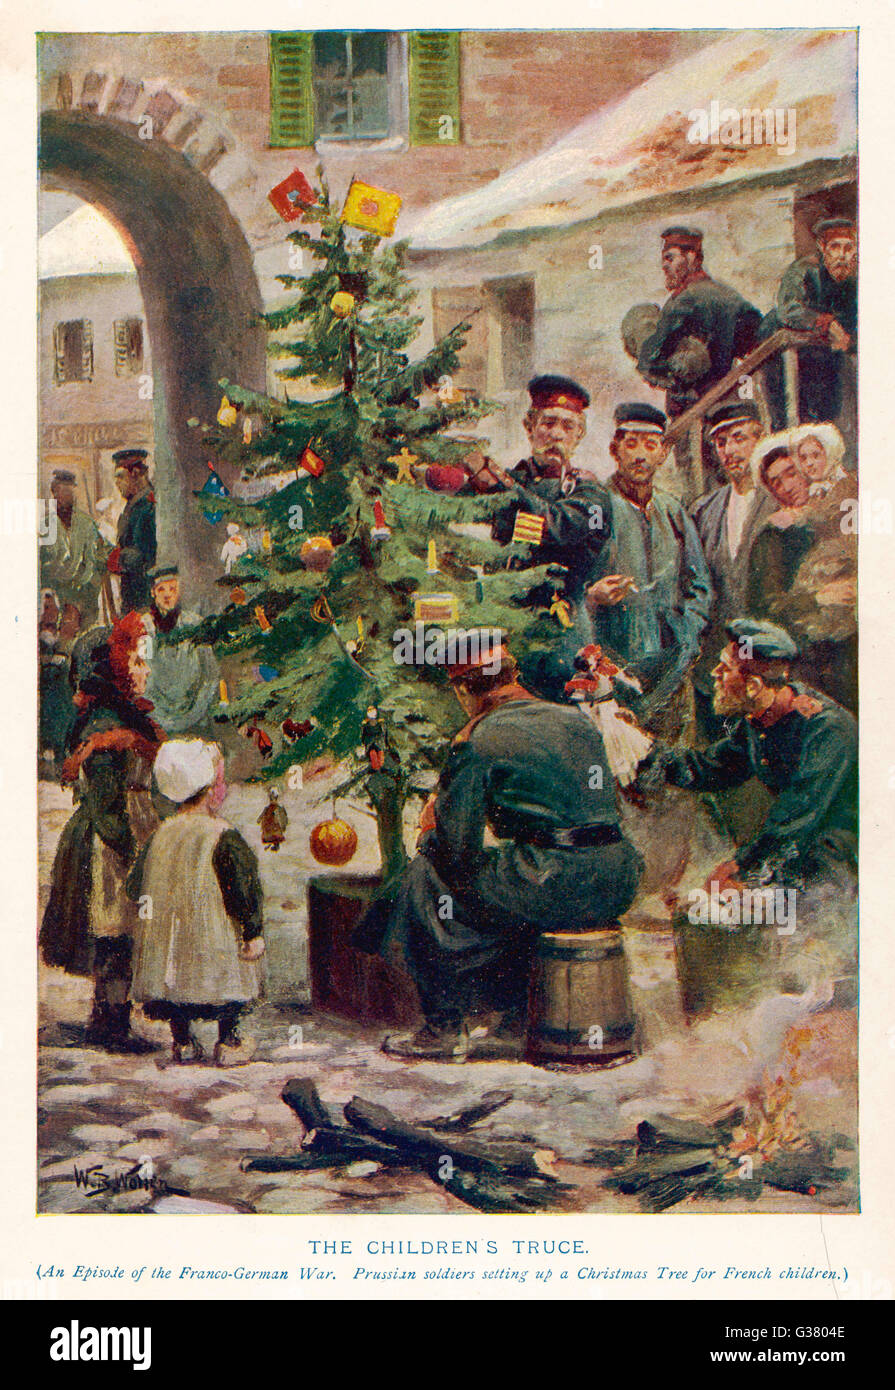 THE CHILDREN'S TRUCE During the Franco-Prussian  War, Germans set up a  Christmas tree in occupied  France, - Stock Image